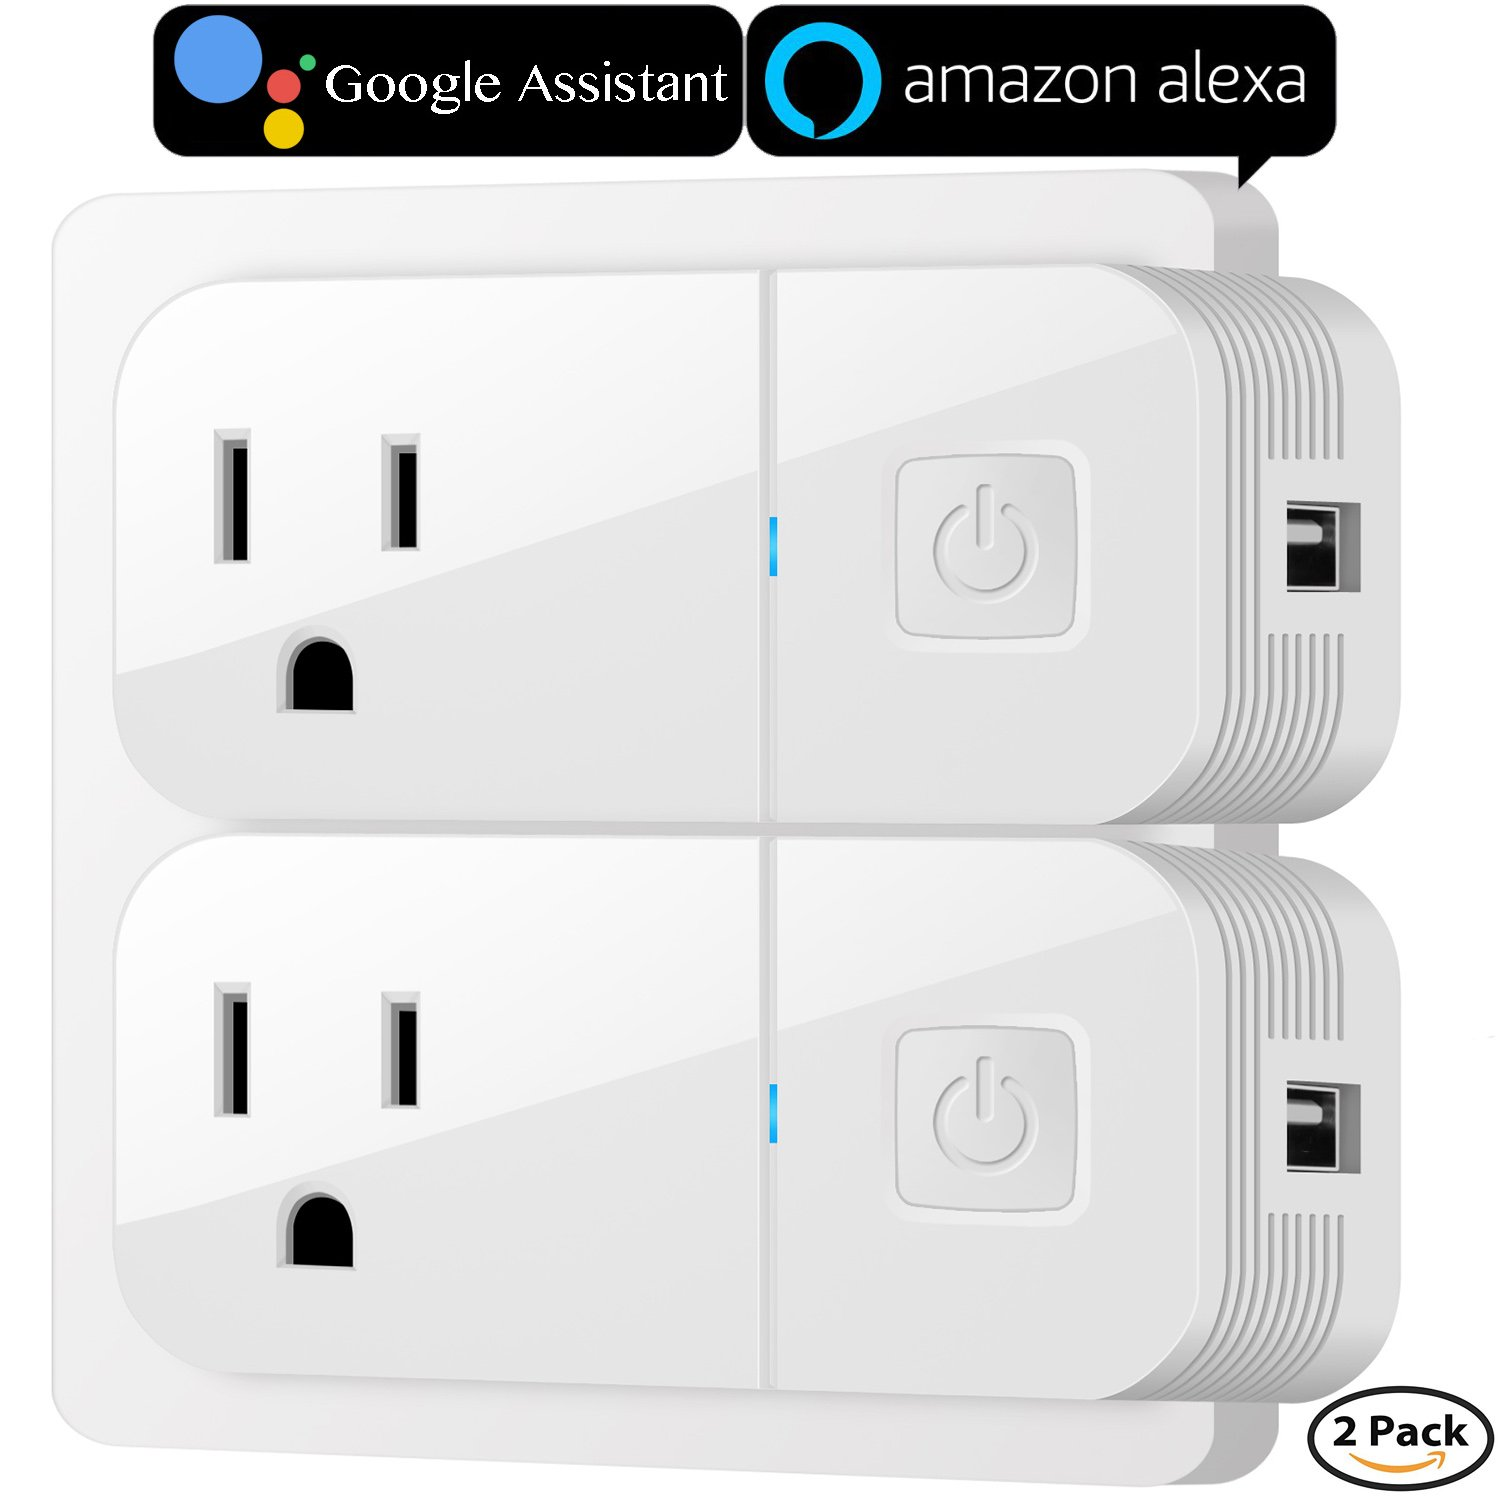 Smart Plug, VIMVIP [2 Pack] Wireless Mini Smart Plugs Outlet USB Charging Wifi Socket Compatible with Amazon Alexa, Google Home to Remote Control, Button Switch and More by IOS/Android Devices (White)